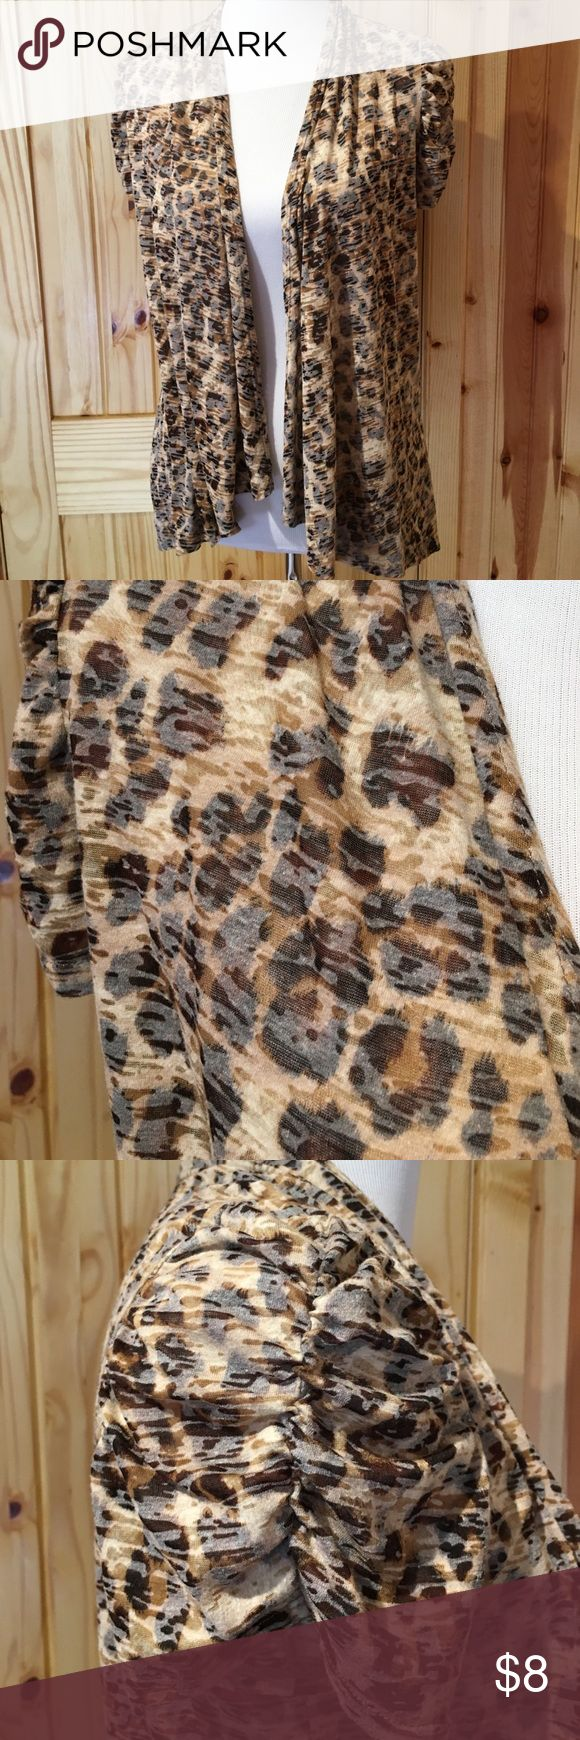 """Lightweight Animal Print Cardigan sz S AGB lightweight cardigan draped front, it's longer on the sides. The short sleeves are gathered up the center. The fabric is slightly sheer see pic. The front from the shoulder to the shortest part is 23"""". The shoulder to the longest side measurement is 27 1/2"""". Center back from neck is 23 1/2"""". Pre-loved condition still has a lot of wear left!! It is 60% cotton and 40% polyester. AGB Sweaters Cardigans"""